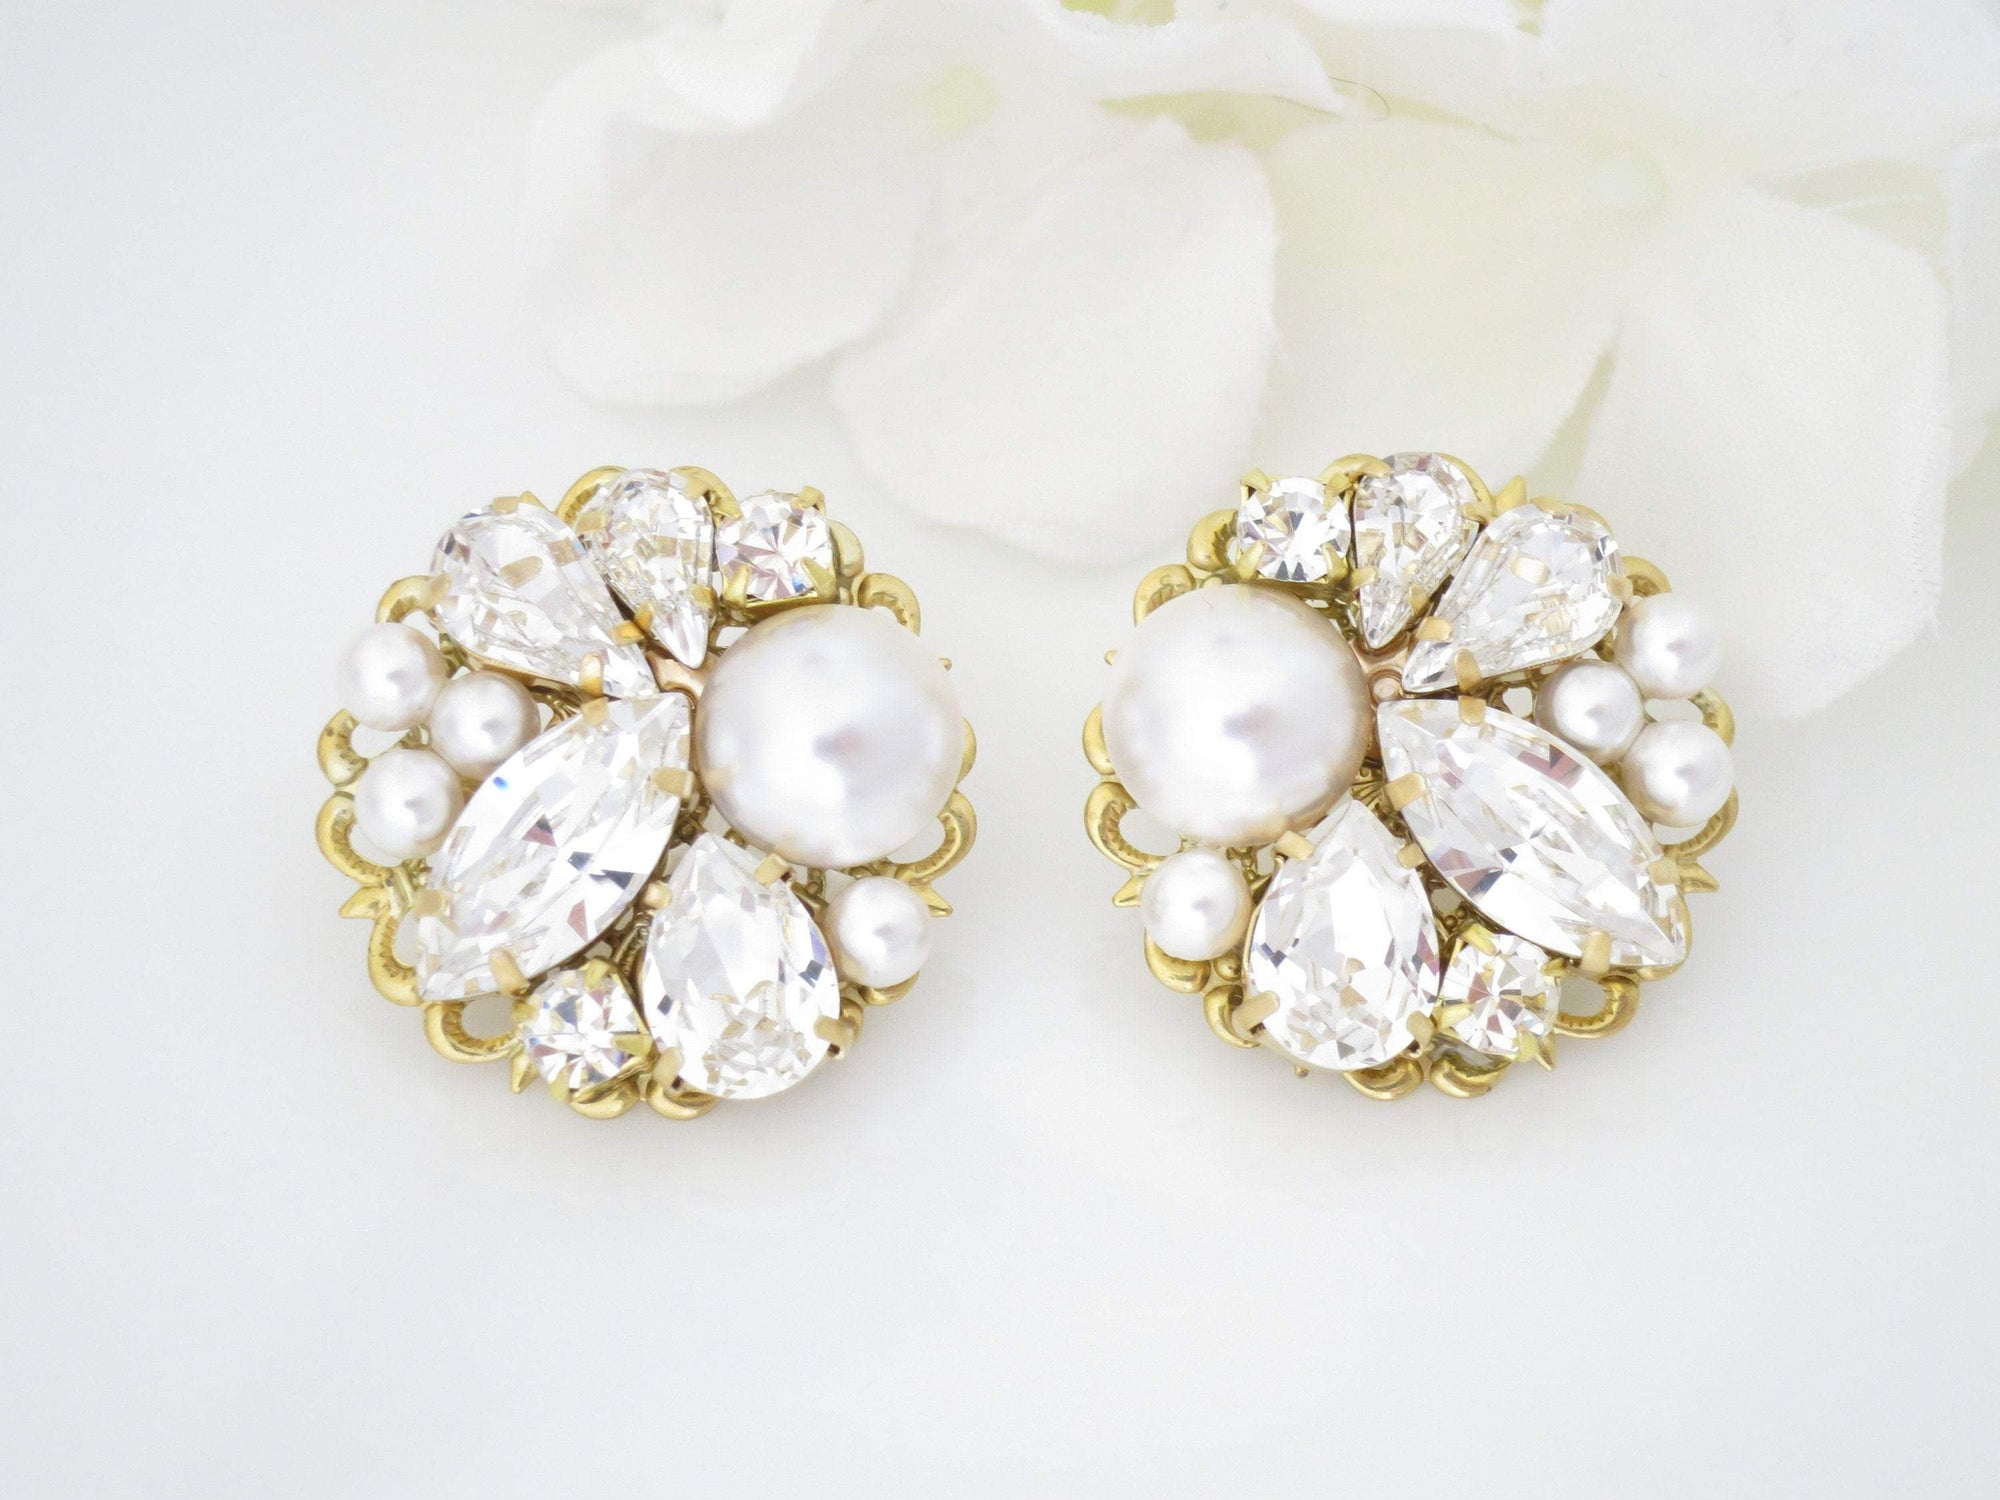 JUNE:  Large Vintage Style Cluster Earrings - BlingBaddaBoom - Minimalist, Vintage, Modern Wedding and Bridal Jewelry